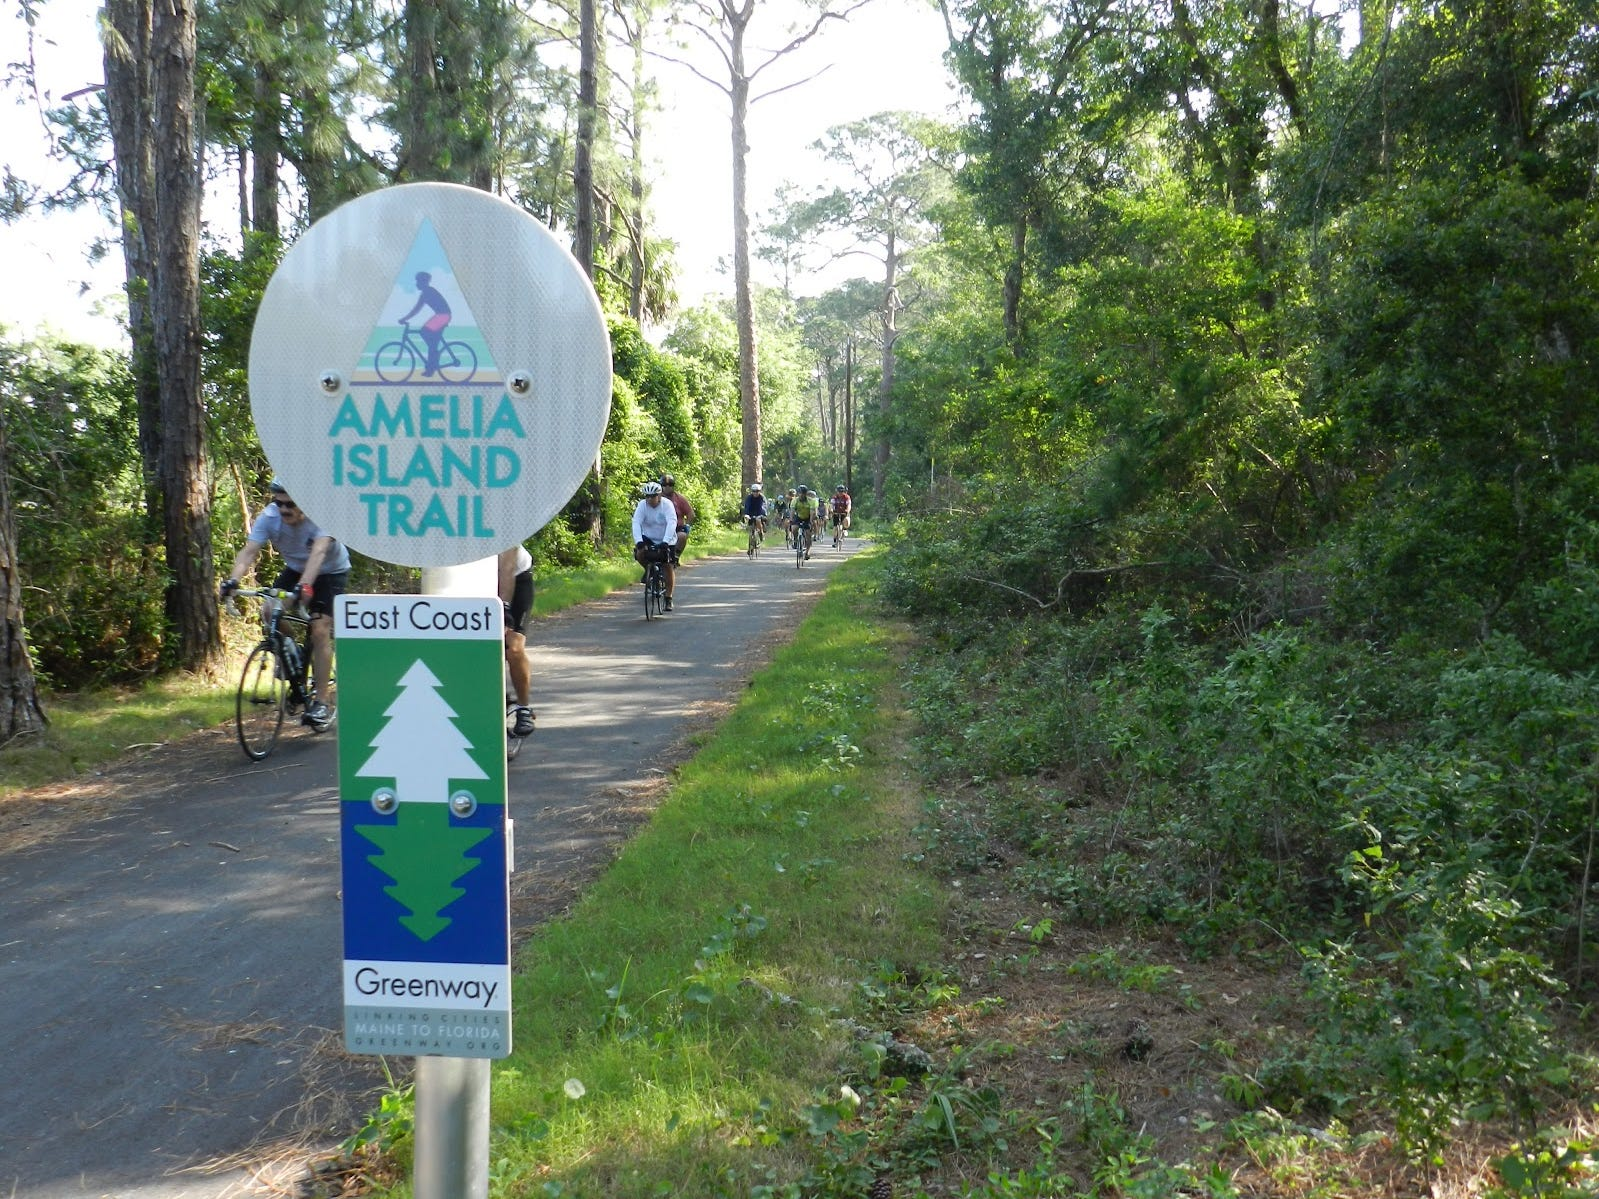 In Florida, the Amelia Island Trail leads from the scenic downtown of Fernandina Beach to follow alongside A1A on the shore.